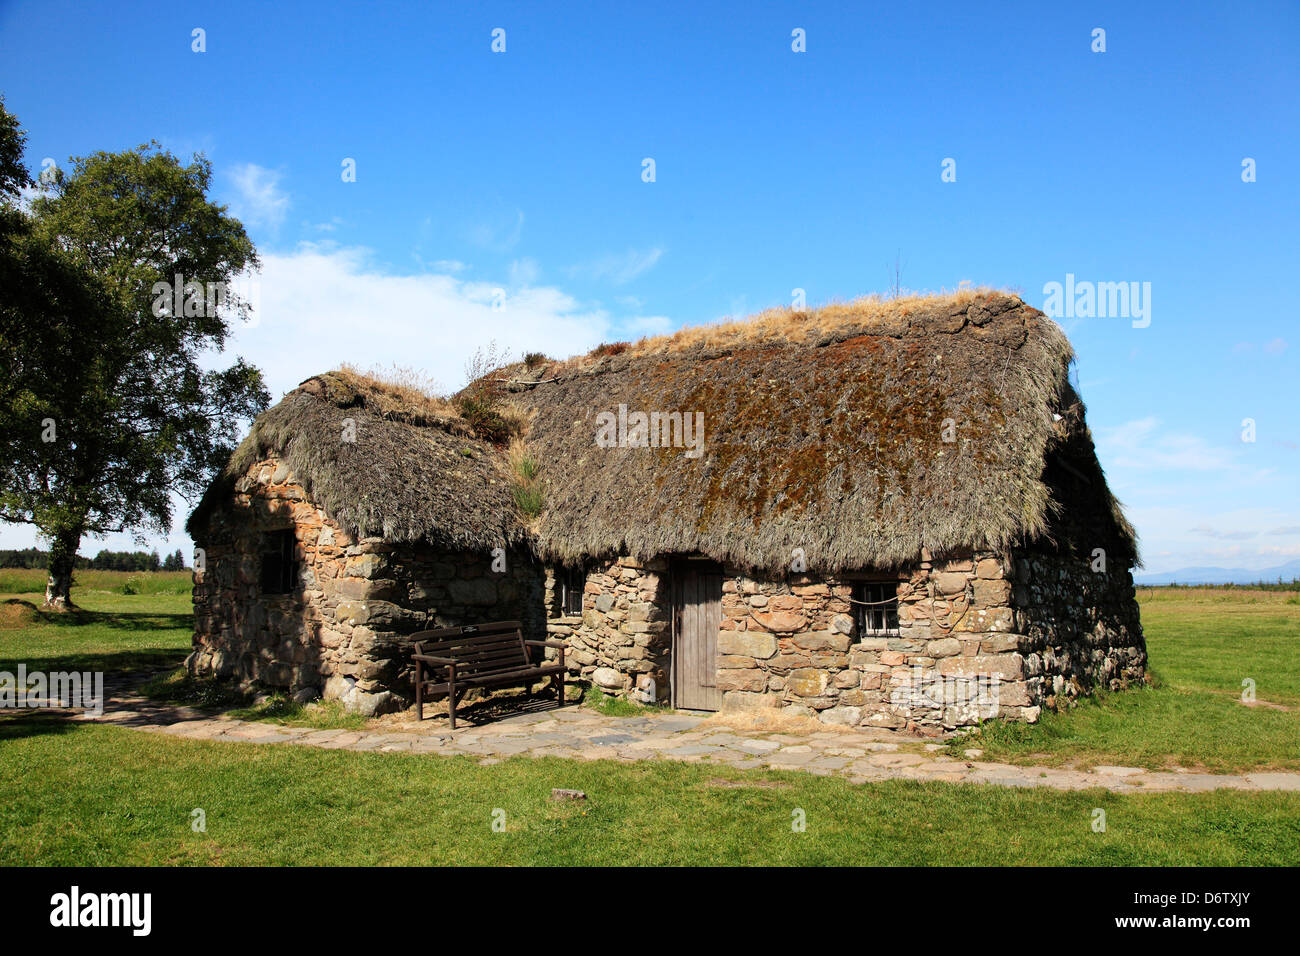 old house in culloden battlefield culloden inverness highlands stock photo 55866803 alamy. Black Bedroom Furniture Sets. Home Design Ideas